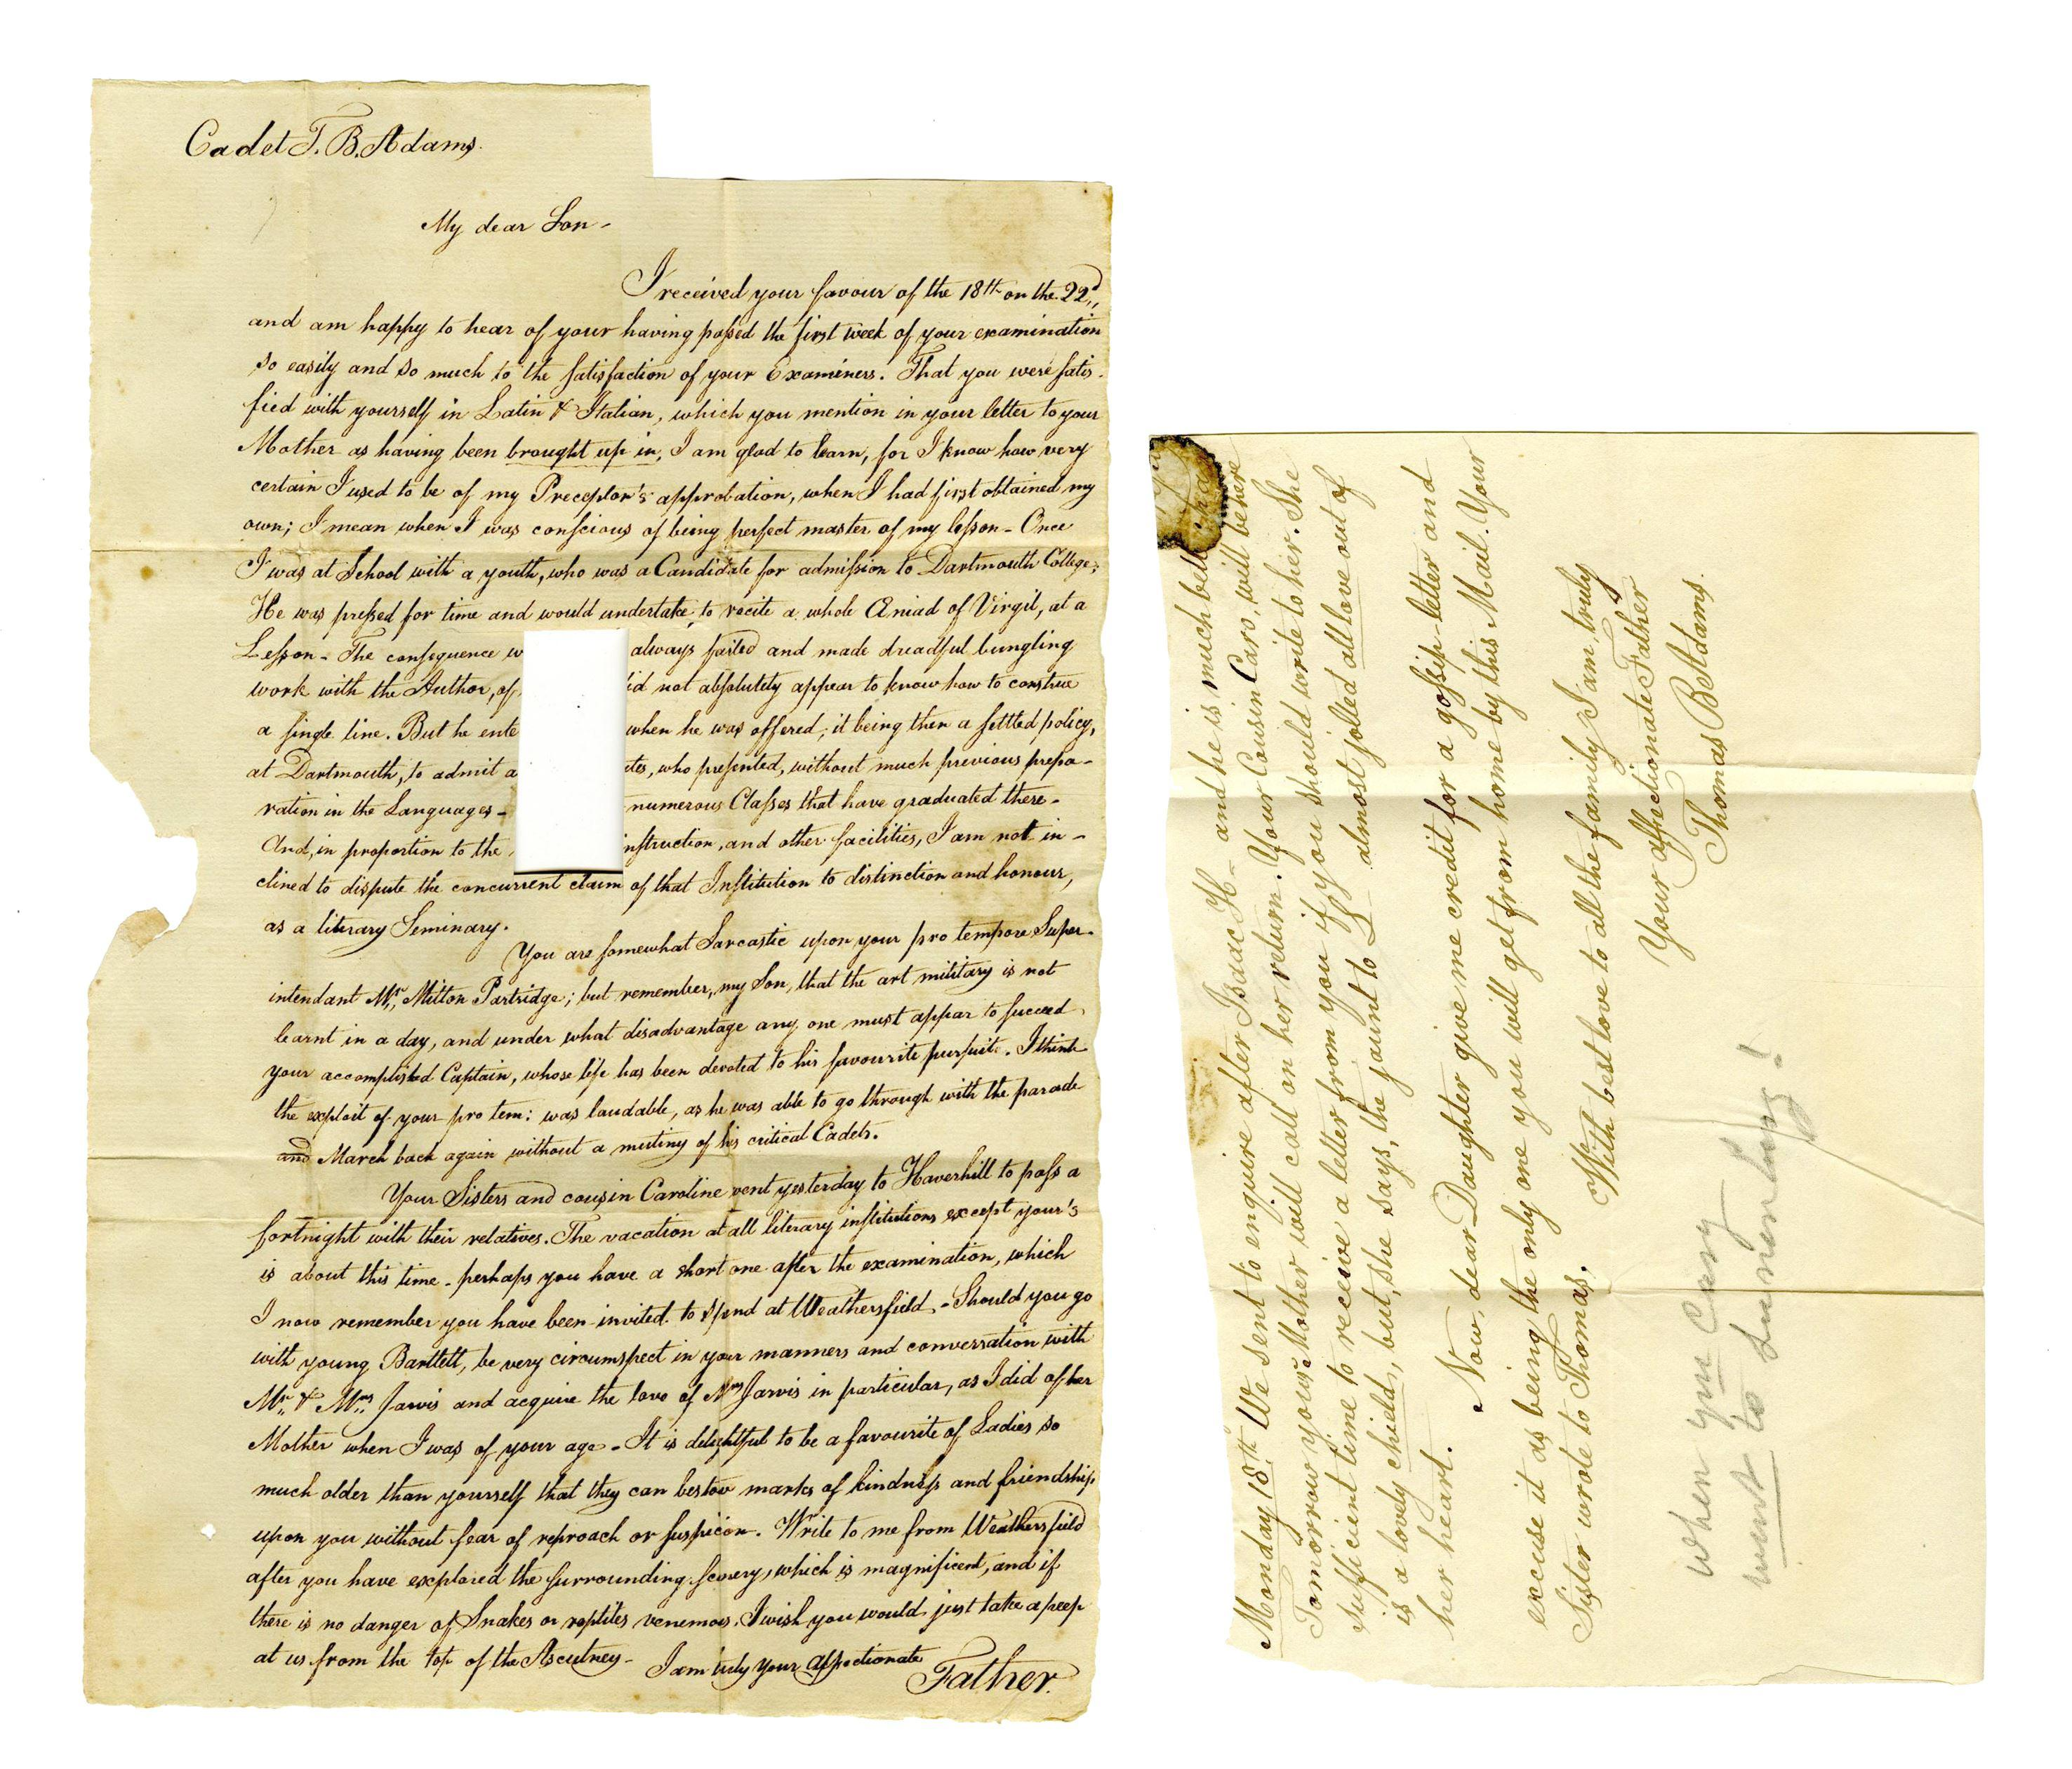 Thomas B. Adams, Youngest Son of John Adams, Writes to His Children